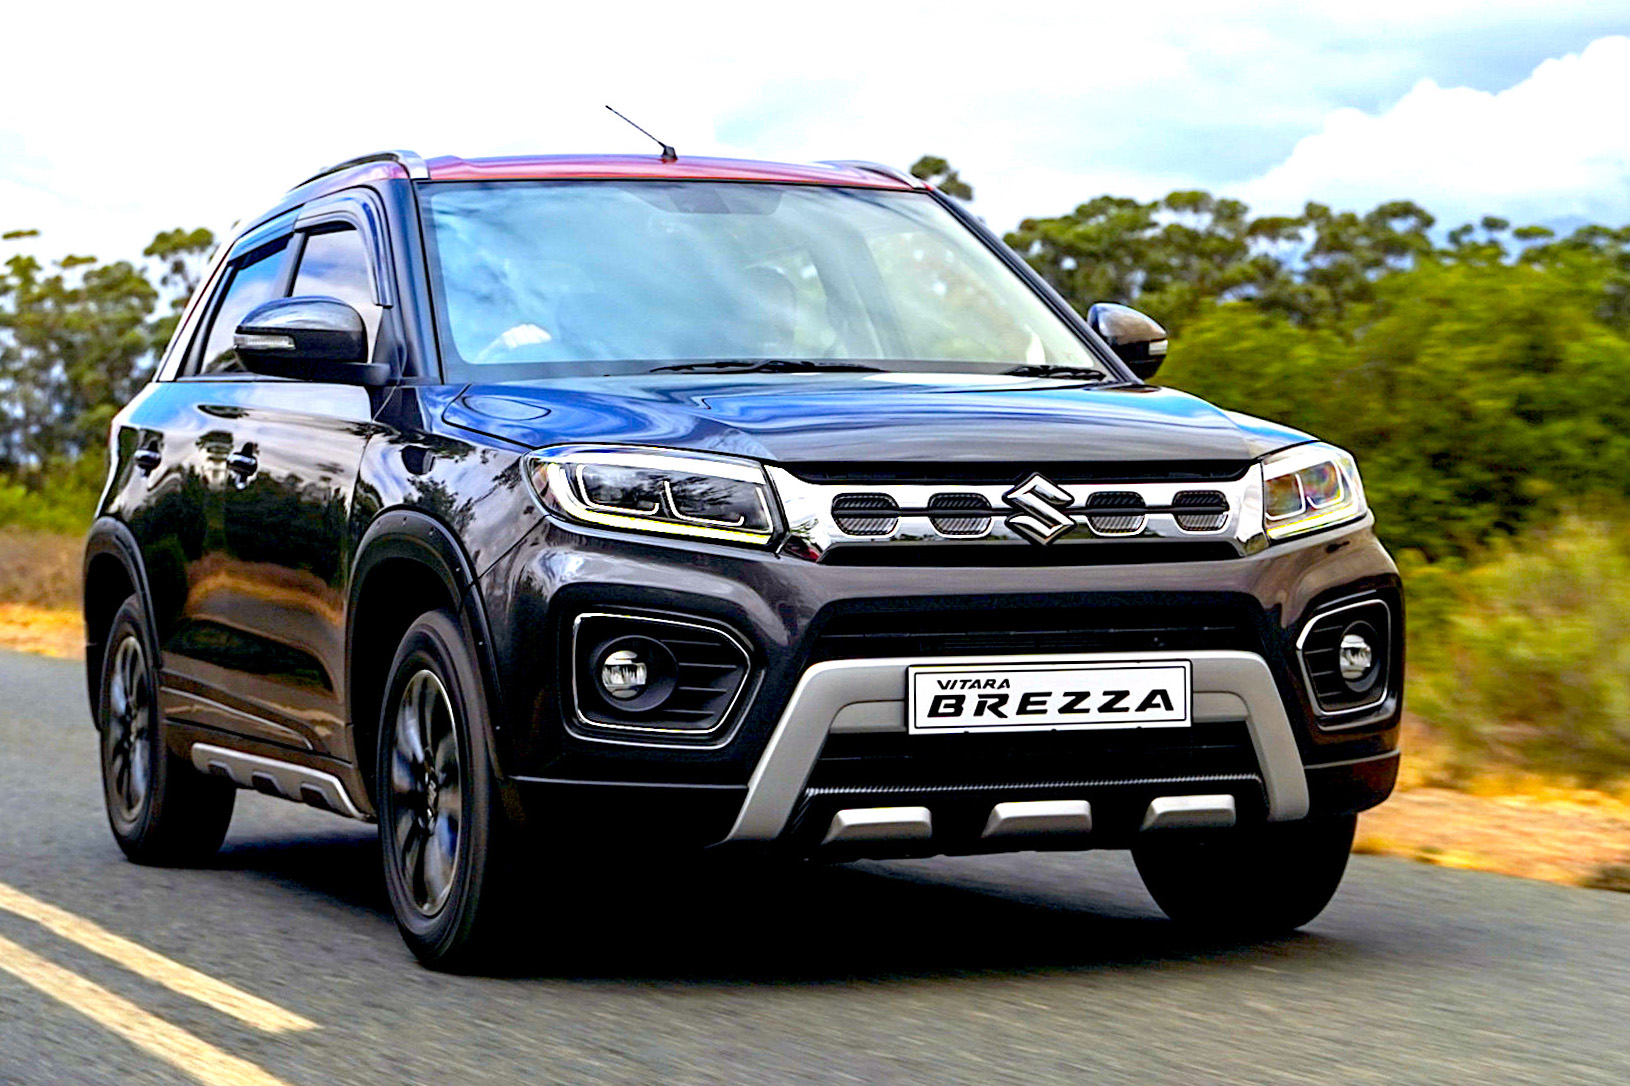 AND ANOTHER NEW SUZUKI SUV BREZZAS IN